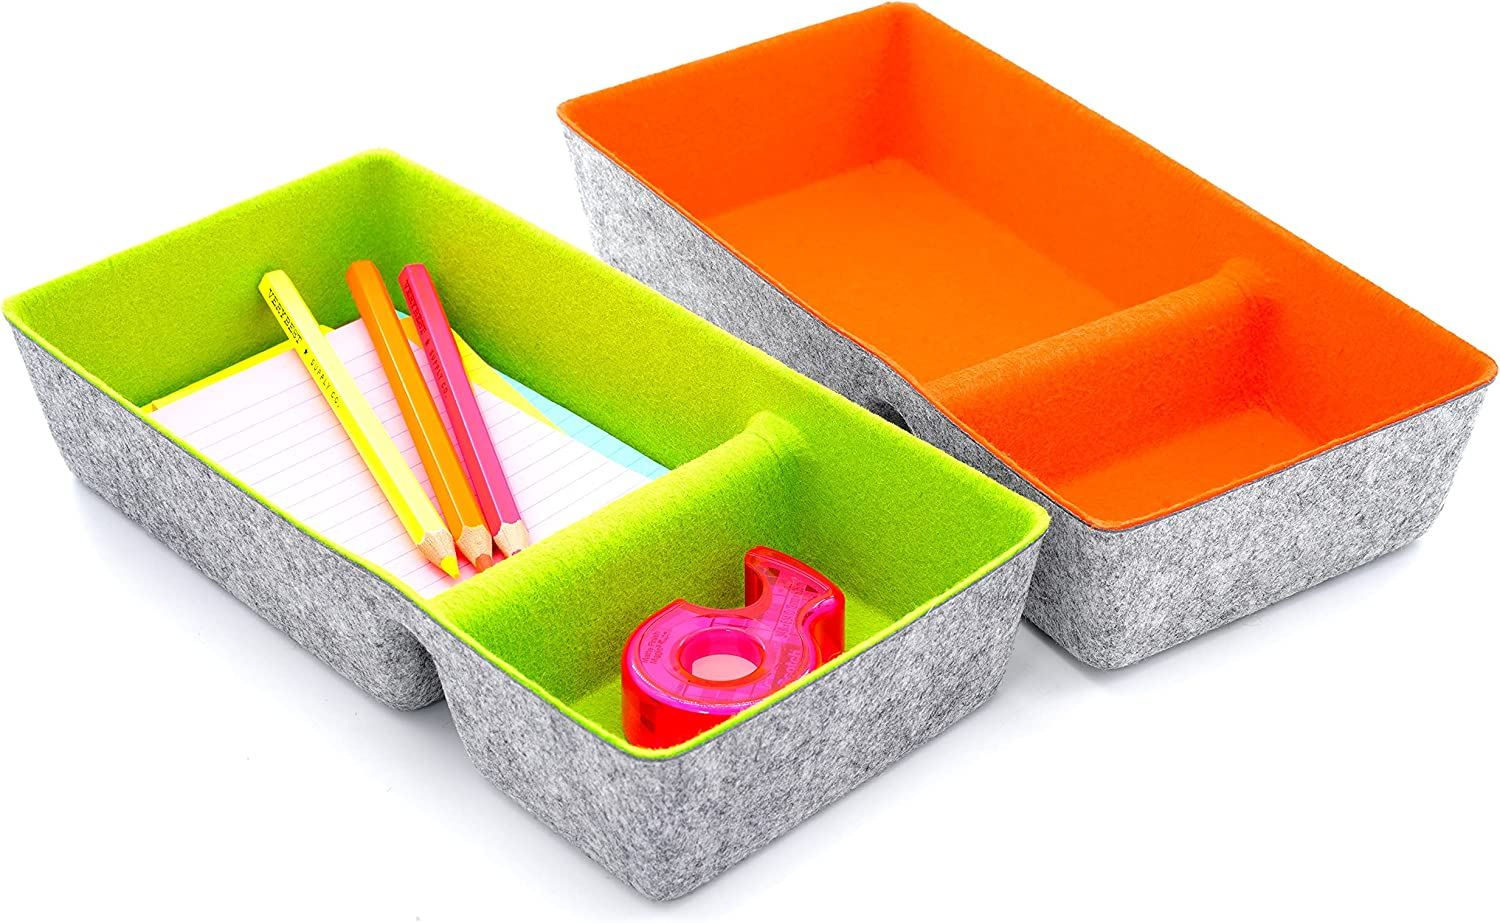 Welaxy Desk Max 74% OFF Drawer Organizer trays low-pricing Compartments Organiz Office 2